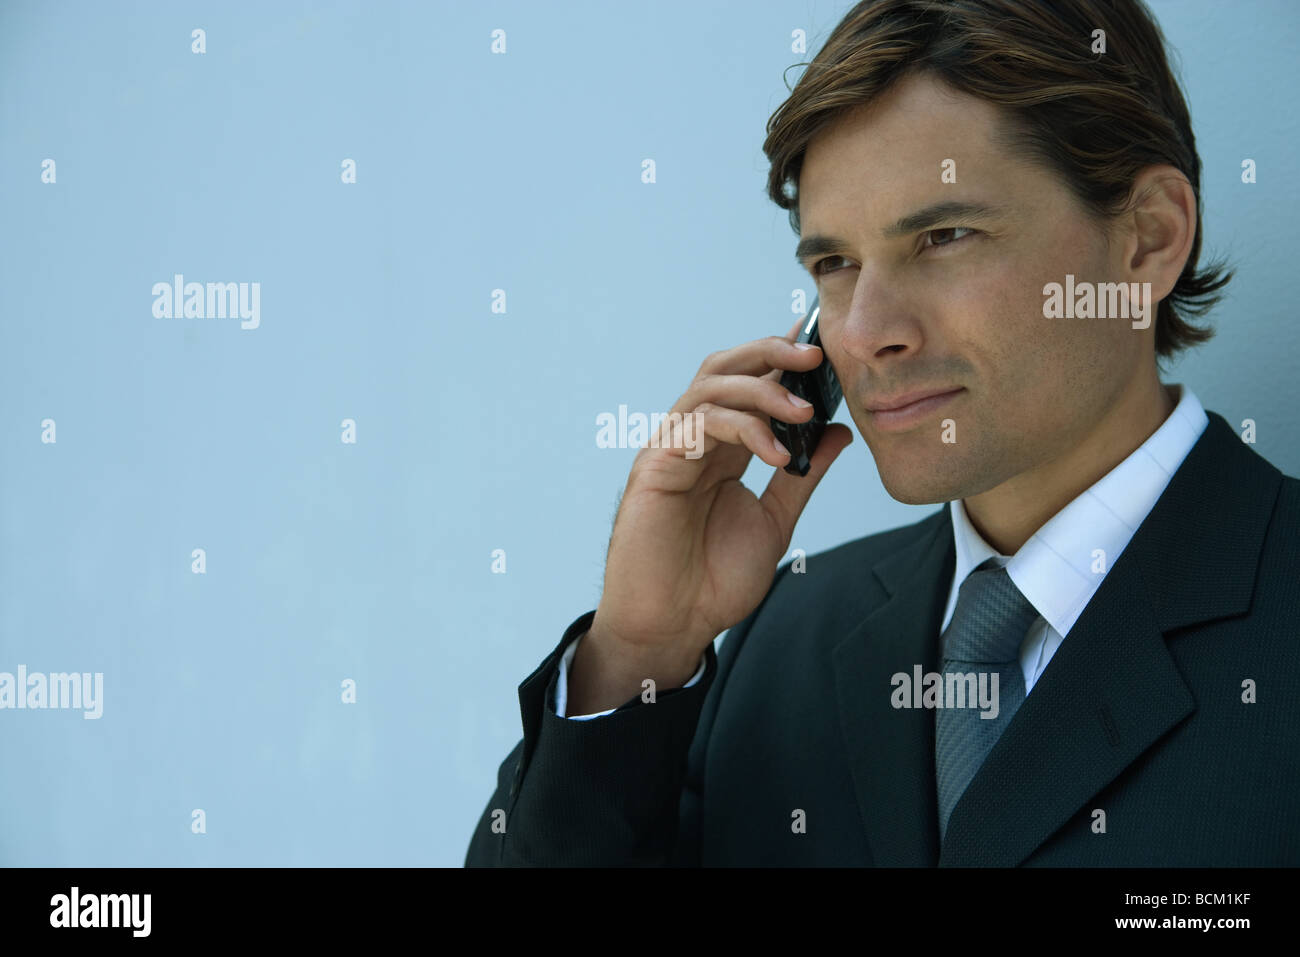 Close-up of businessman using cell phone, head and shoulders - Stock Image